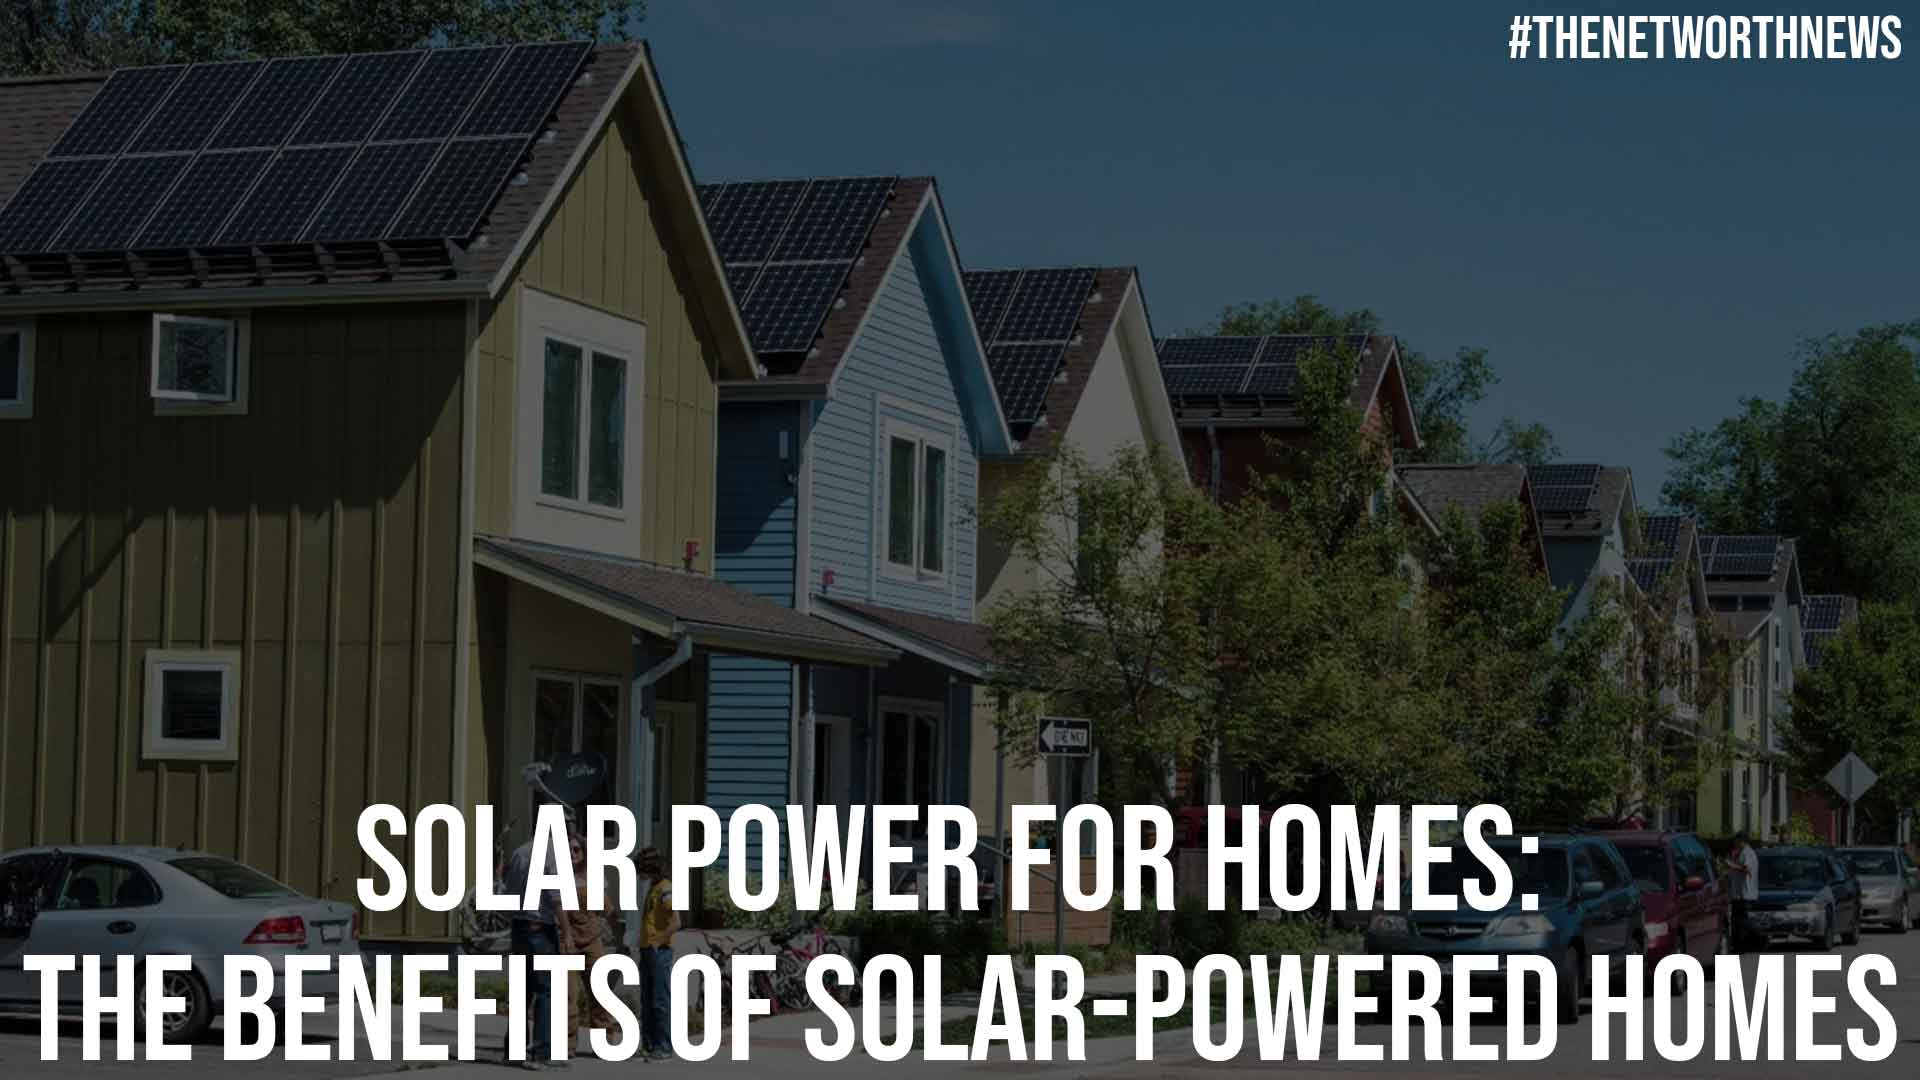 Solar Power for Homes The Benefits of Solar Powered Homes